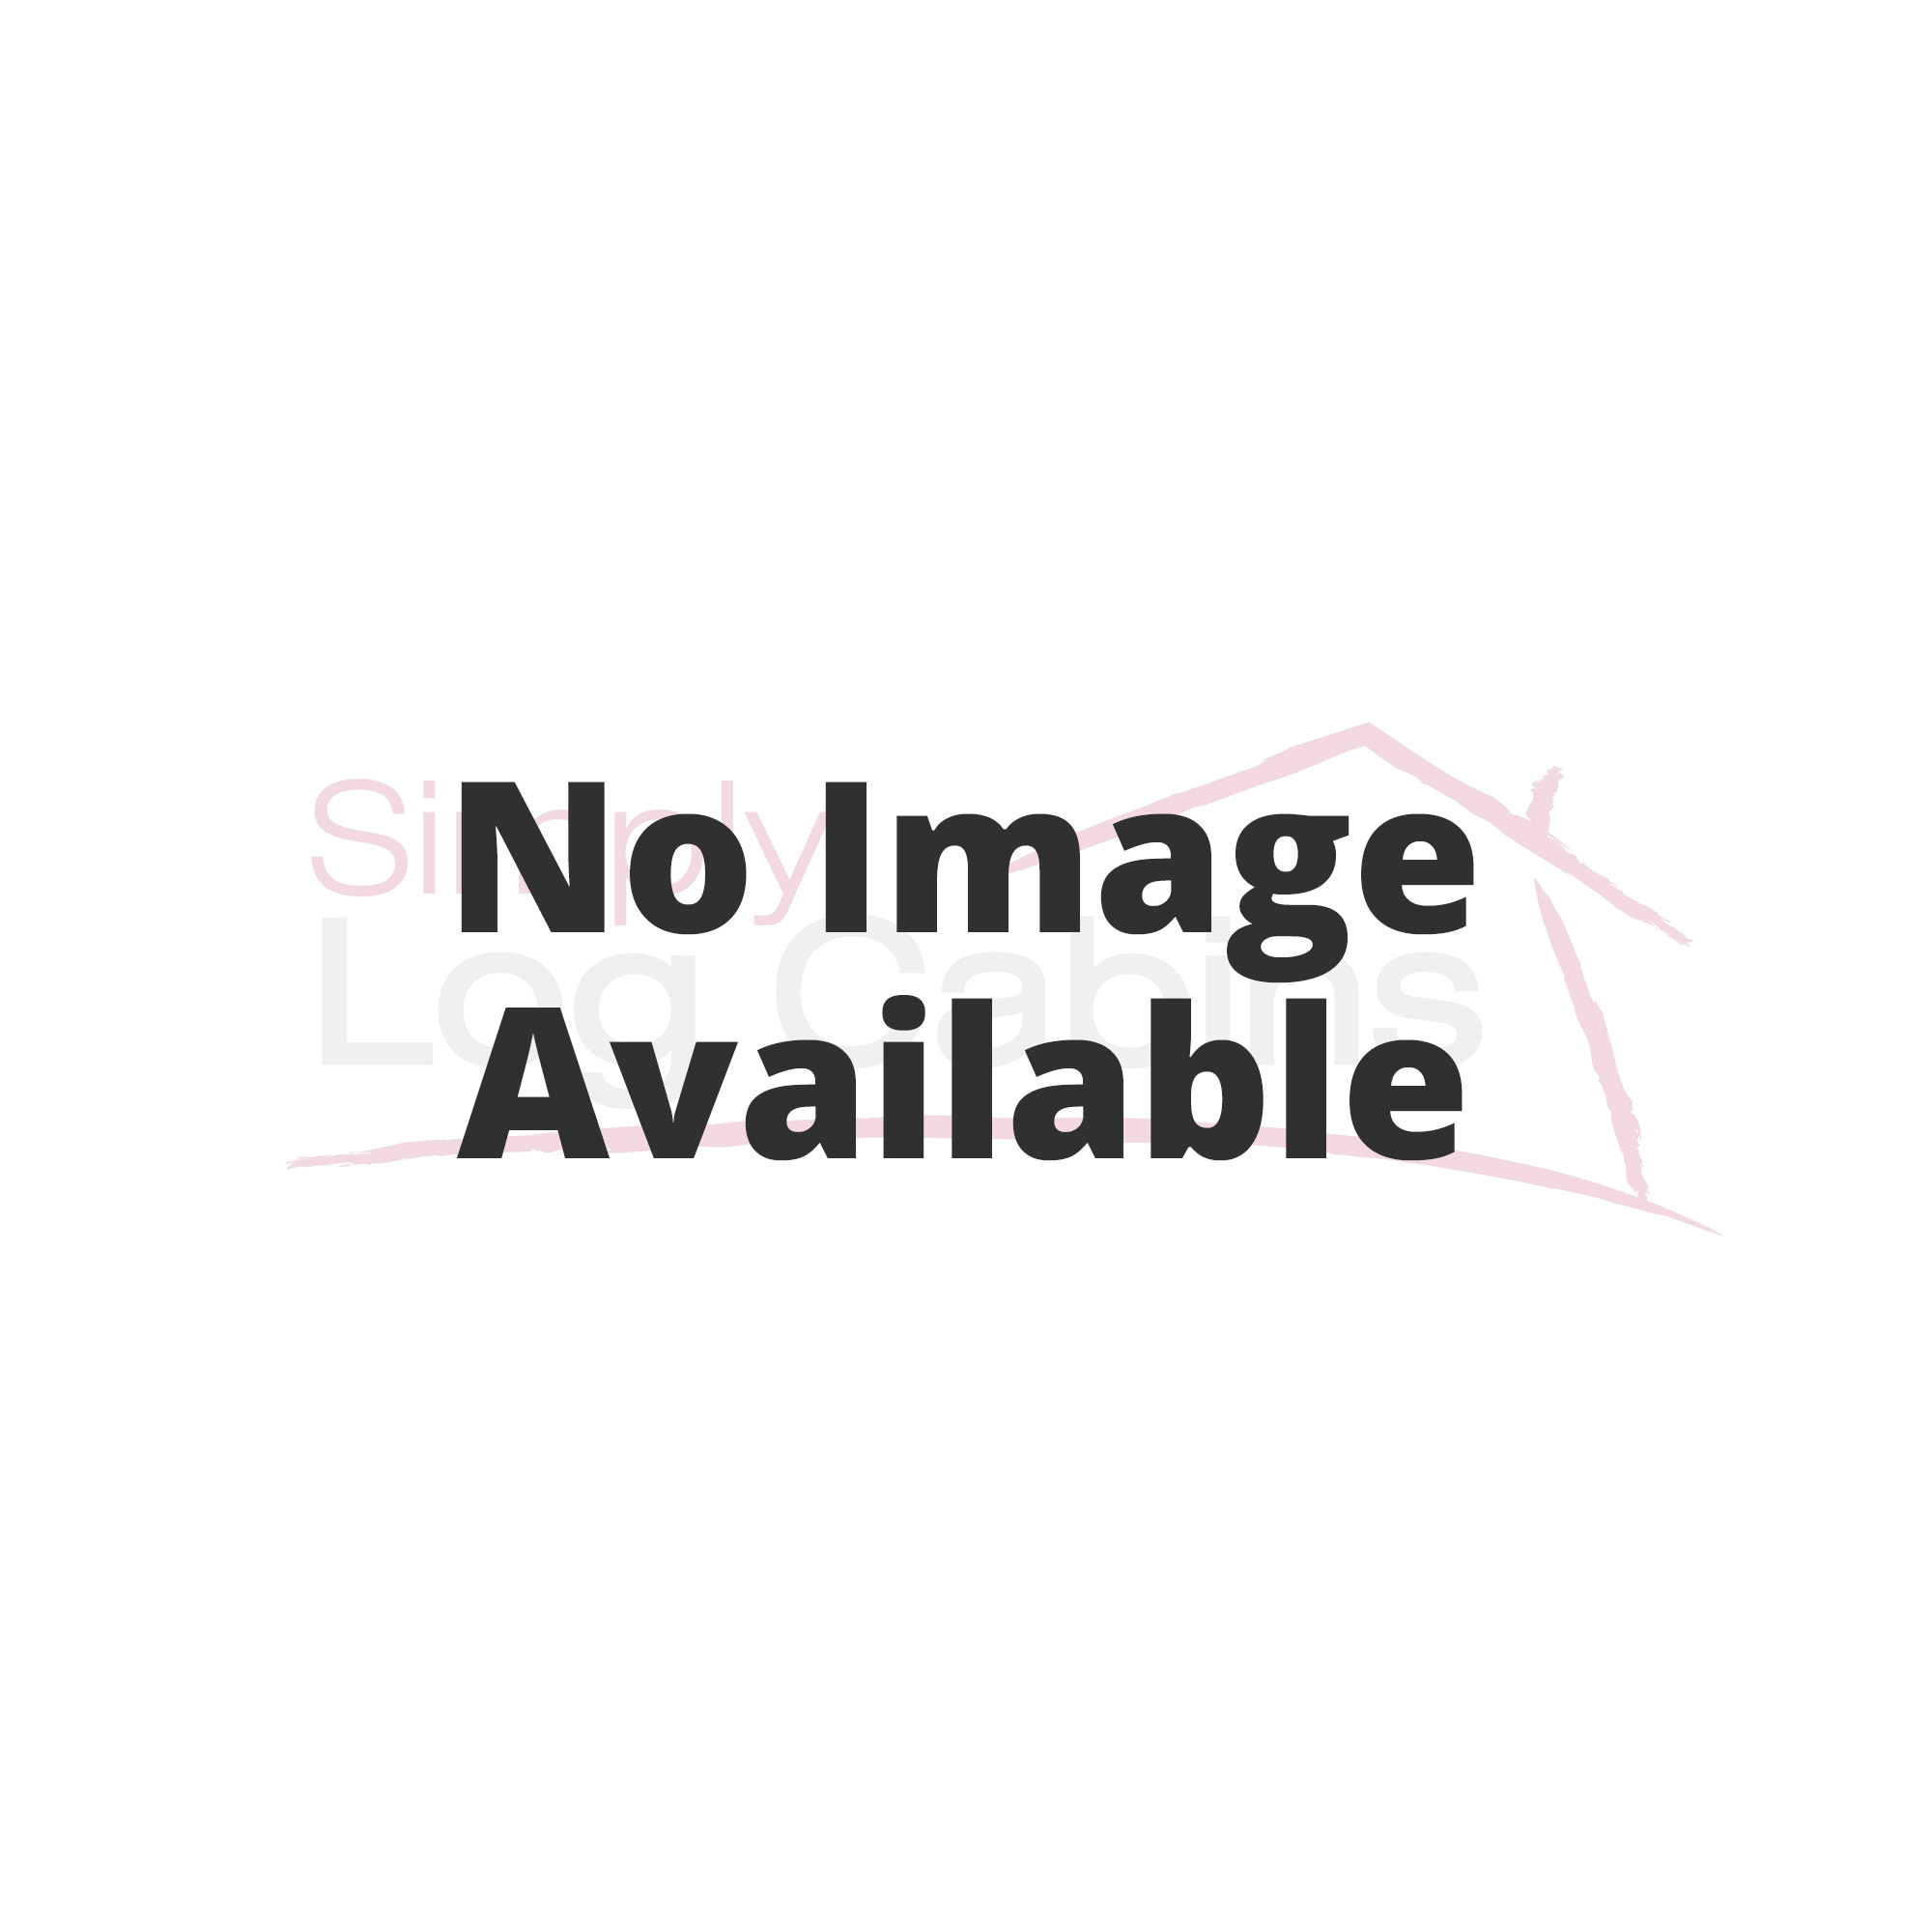 Jagram Brompton Pavilion Gazebo with Half-Height Baluster Walls